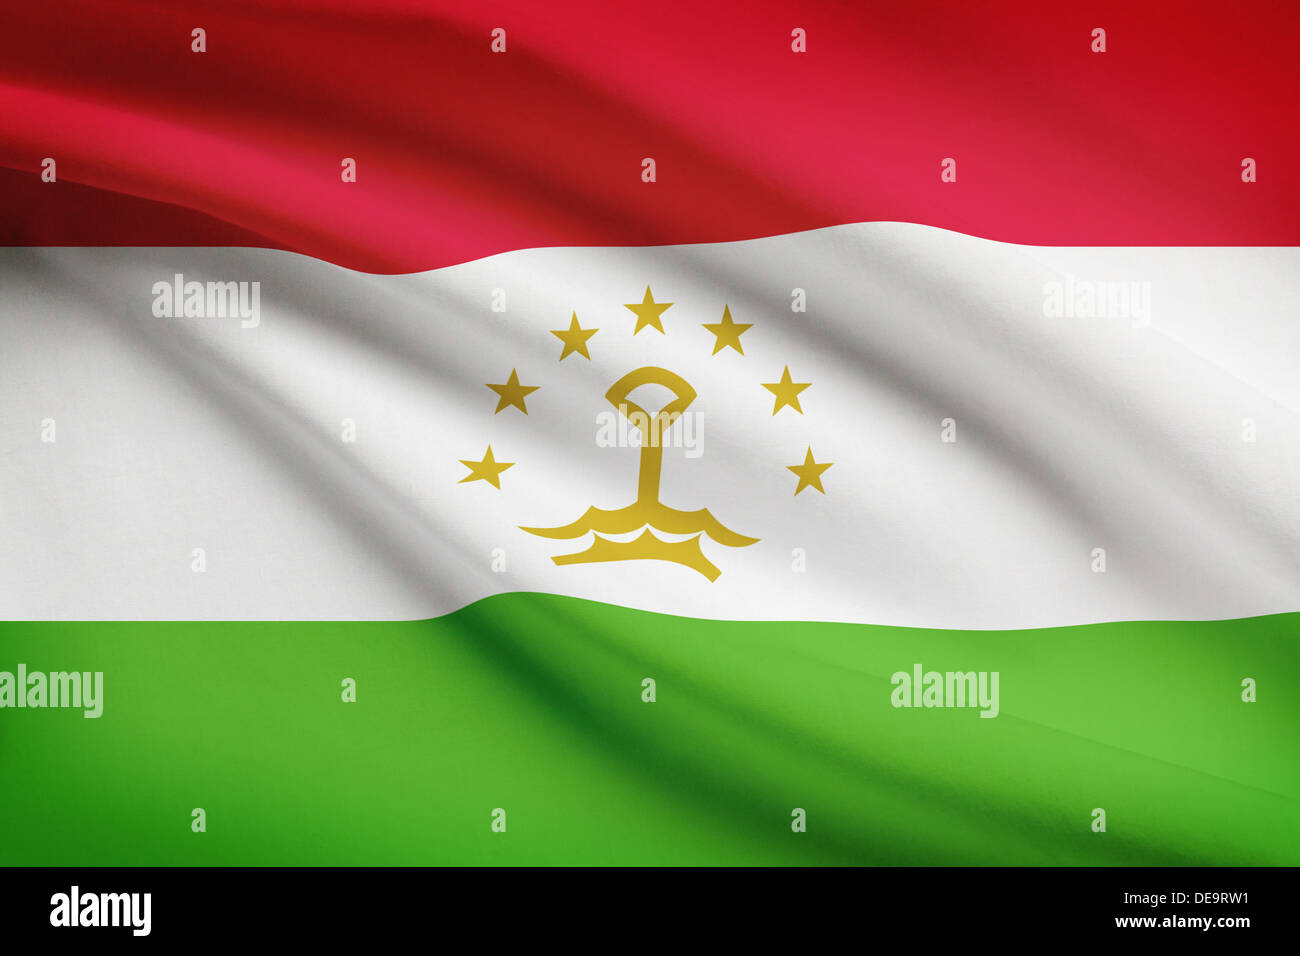 Tajik flag blowing in the wind. Part of a series. - Stock Image